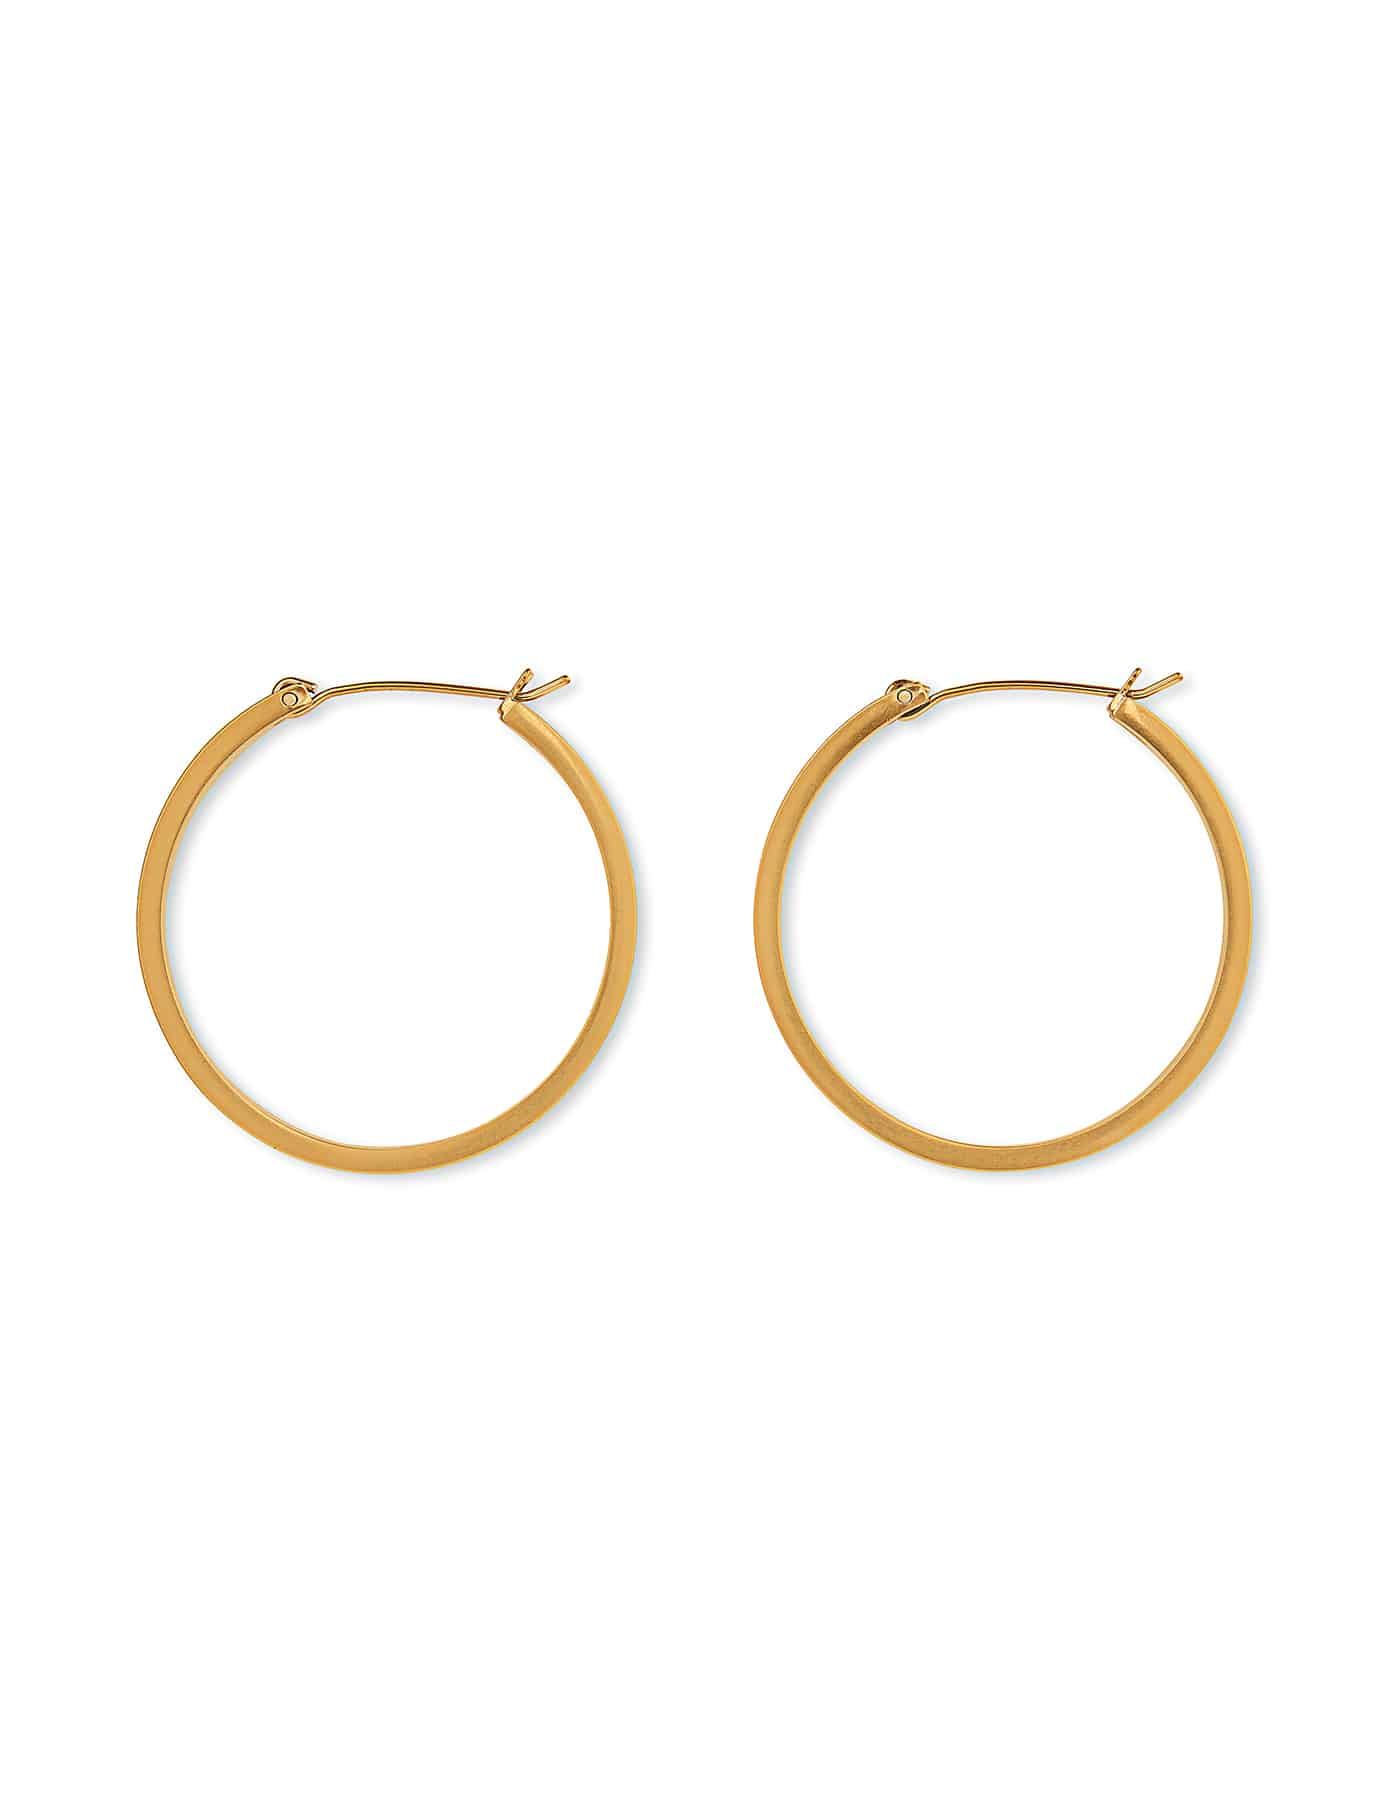 Matte Gold Hoop Earrings, Medium